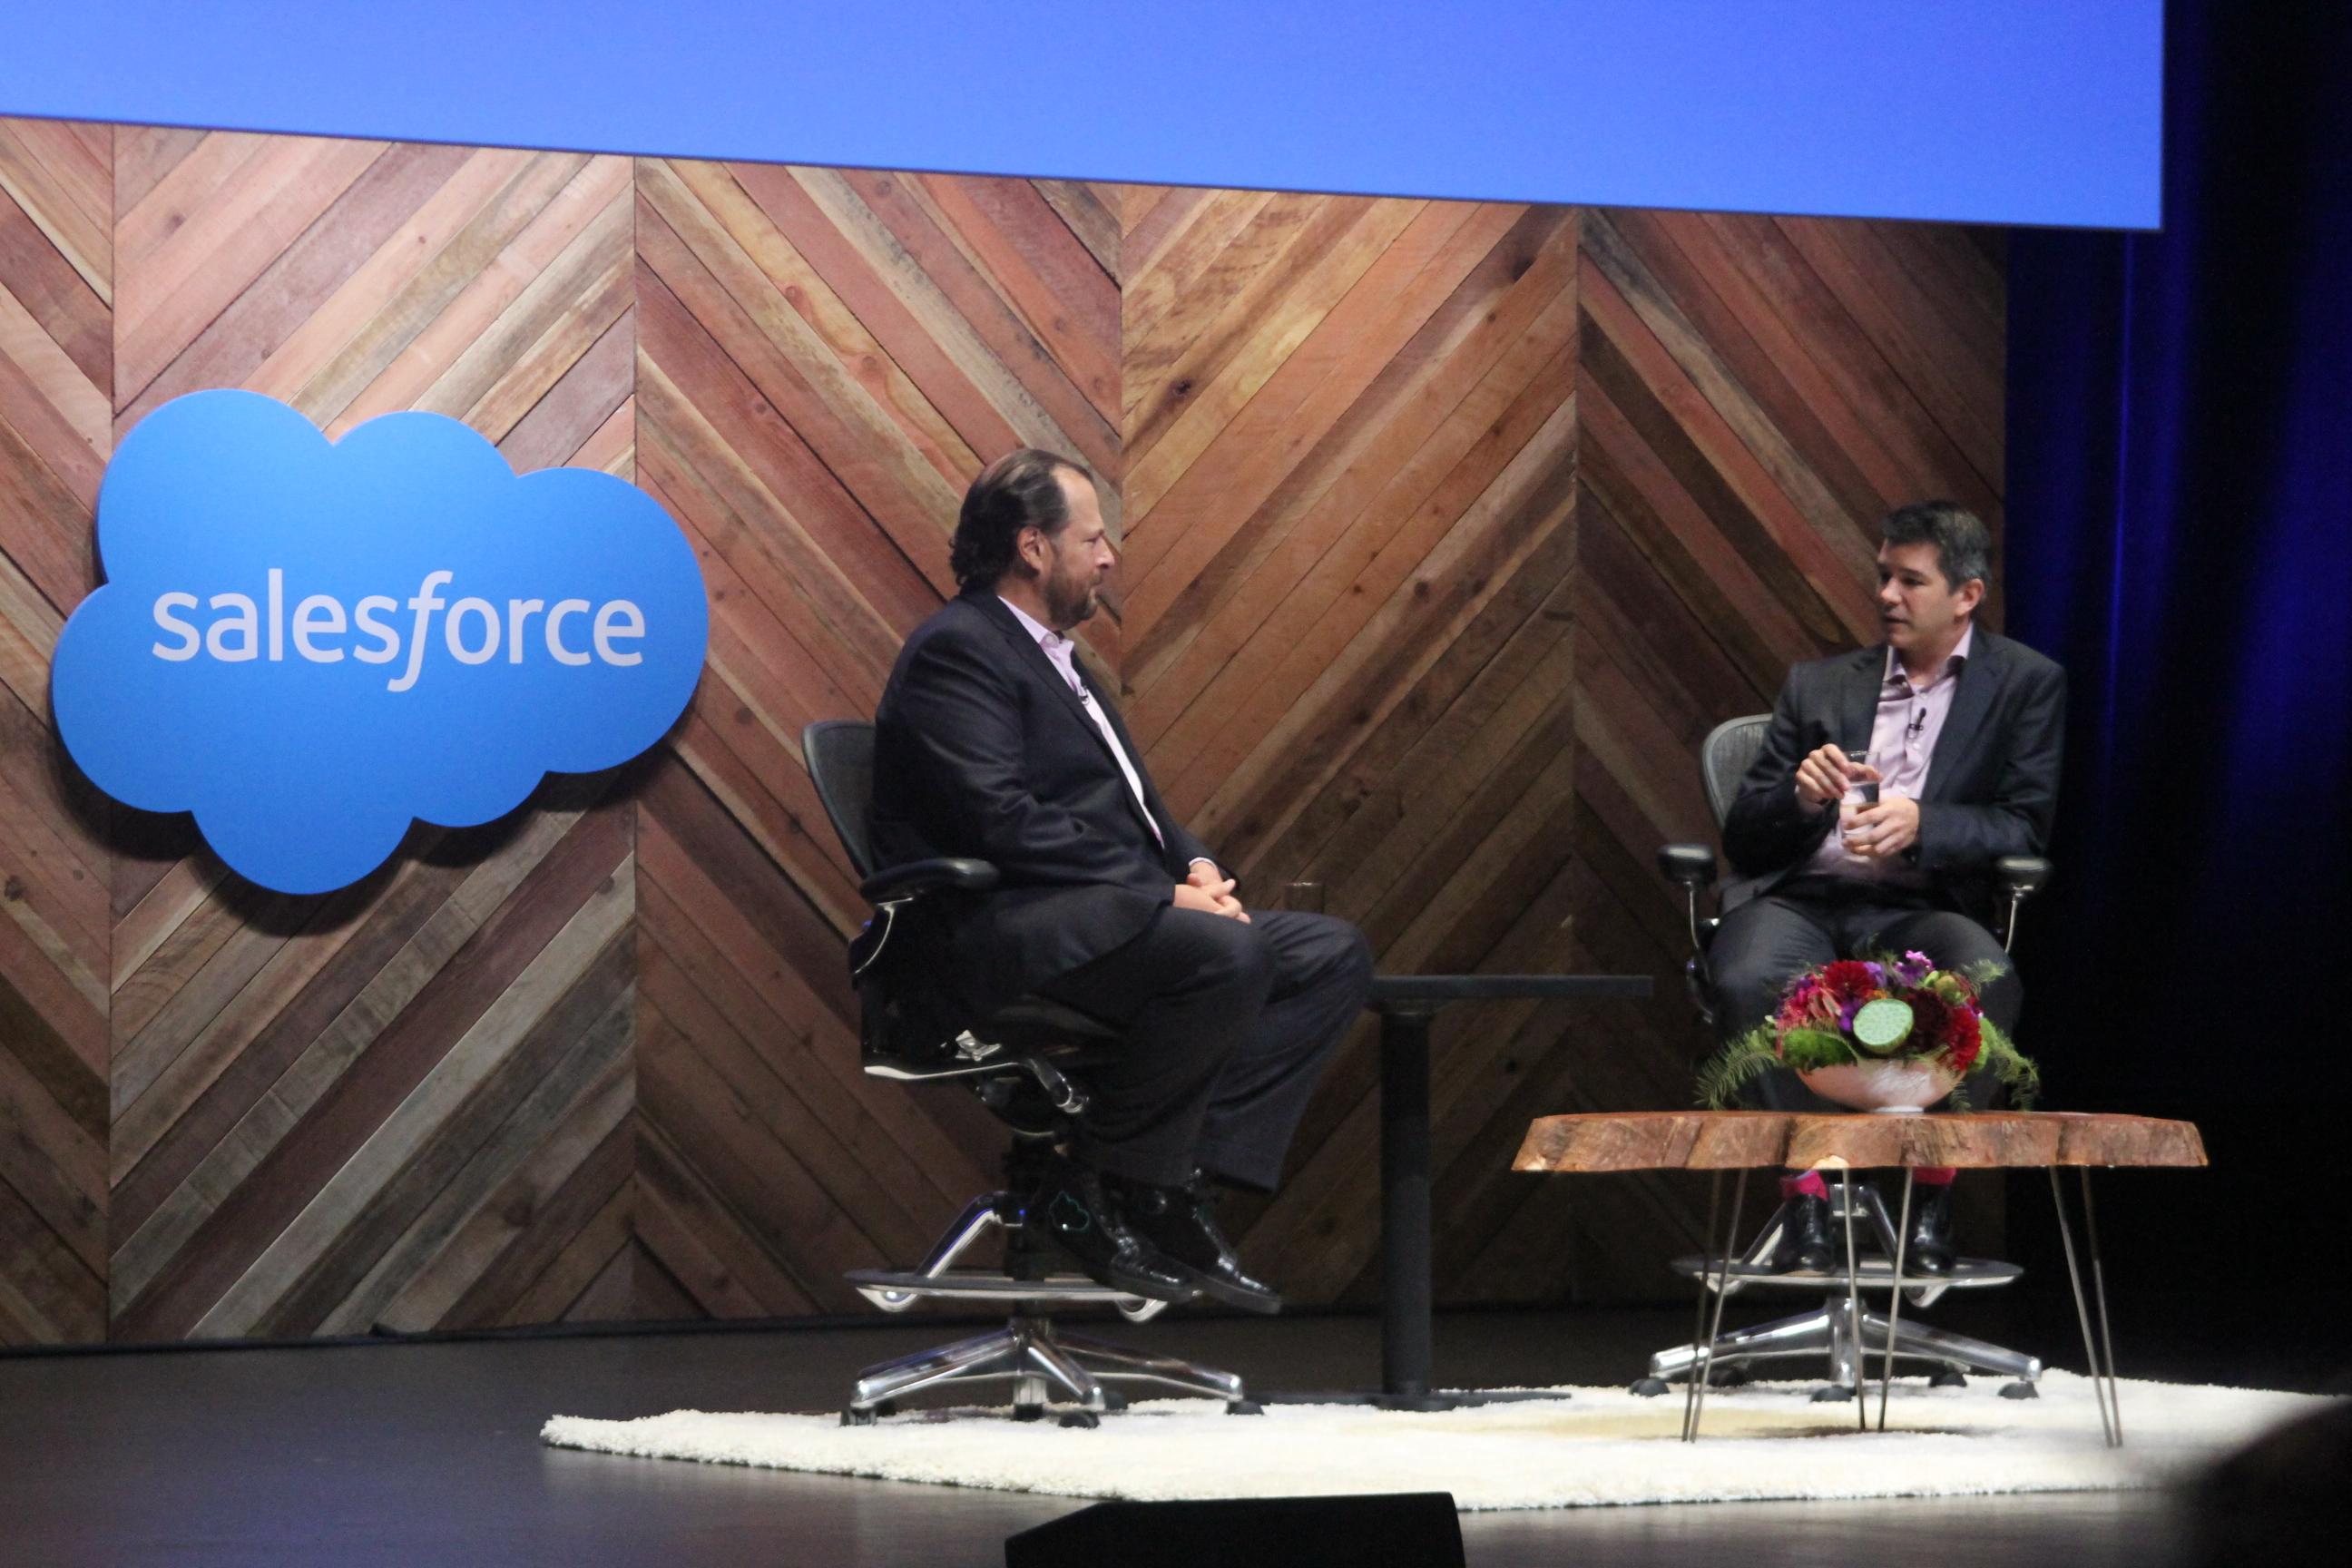 Salesforce CEO Marc Benioff and Uber CEO Travis Kalanick on stage during a fireside chat at Dreamforce 2015.